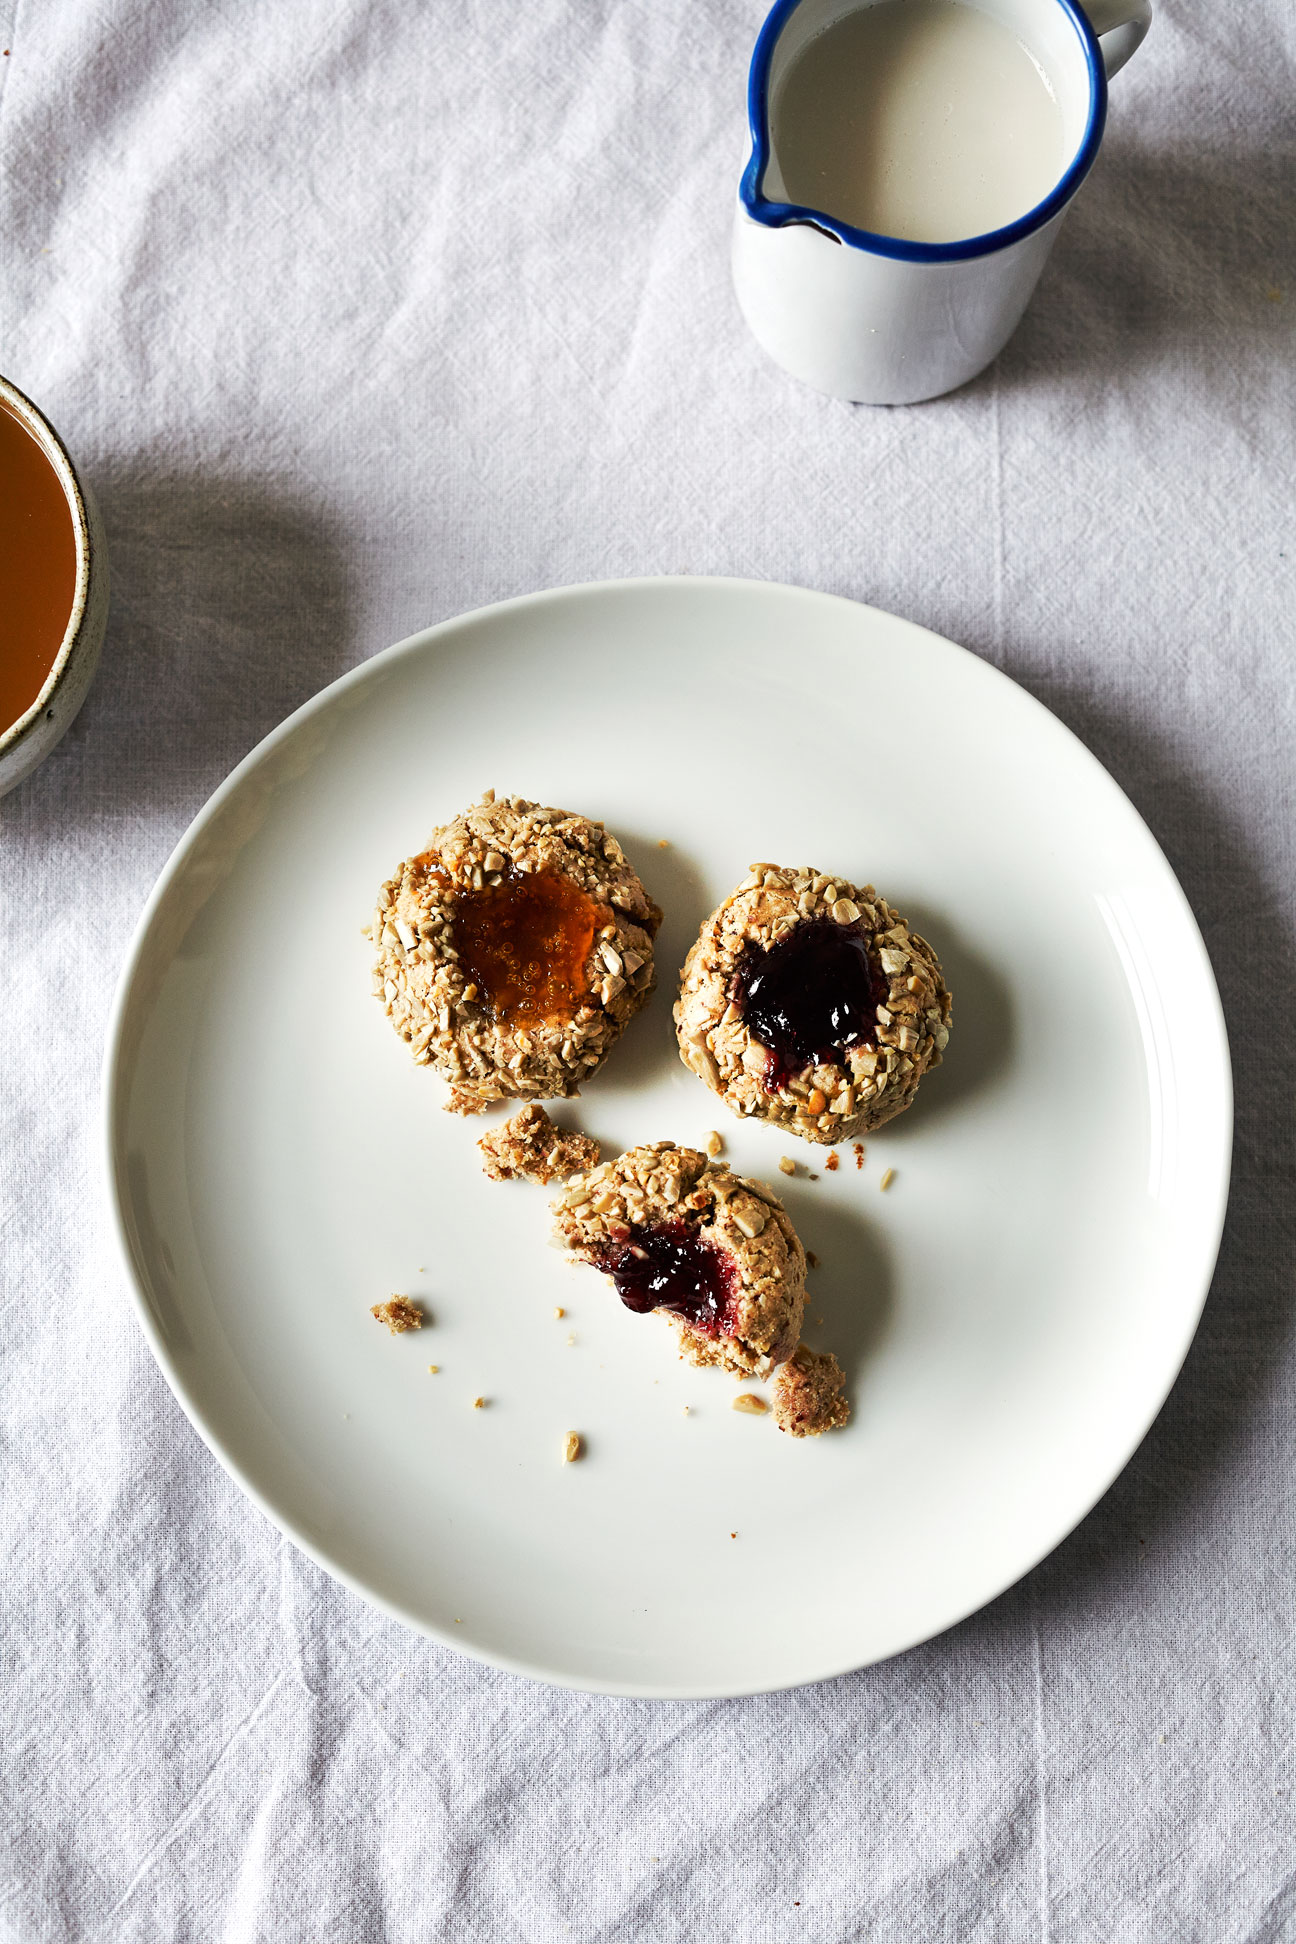 Chestnut Sunflower Jam Thumbprint Cookies (GF, DF)